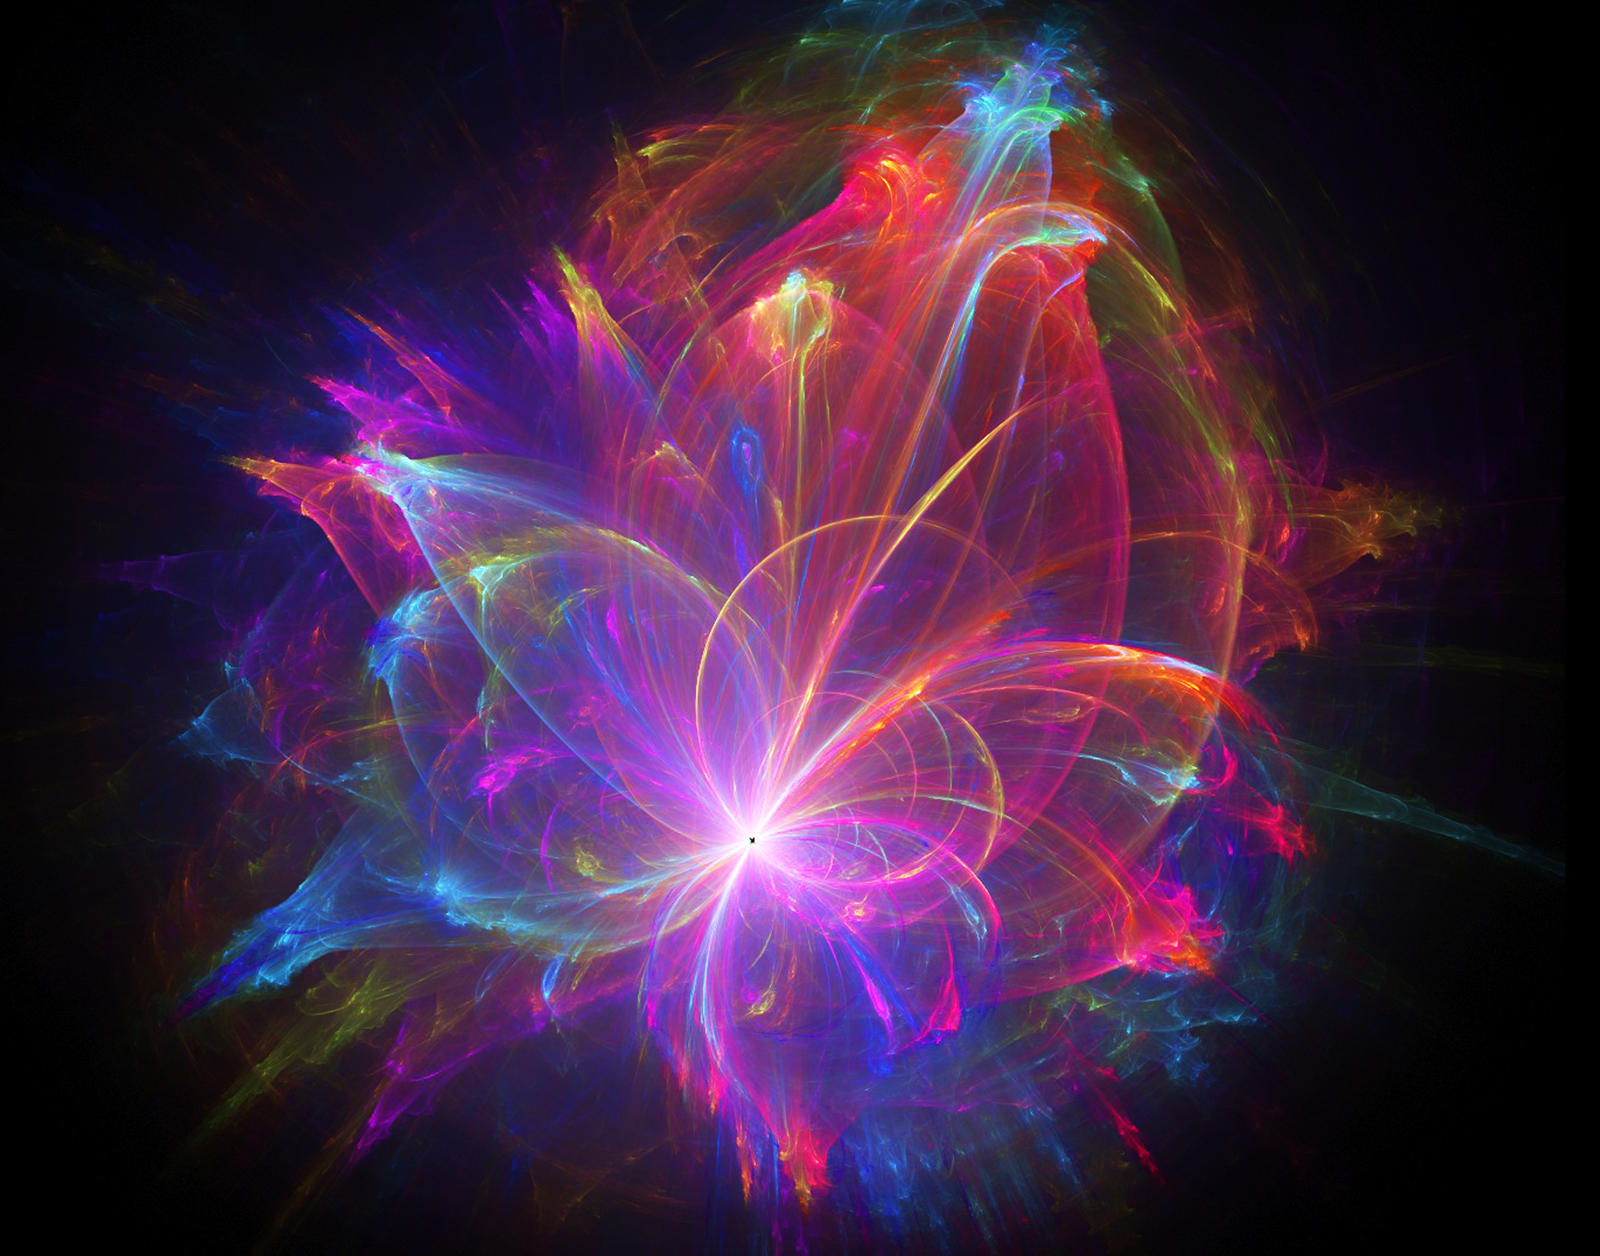 Spinning rainbow petals by kazytc on deviantart for Rainbow petals